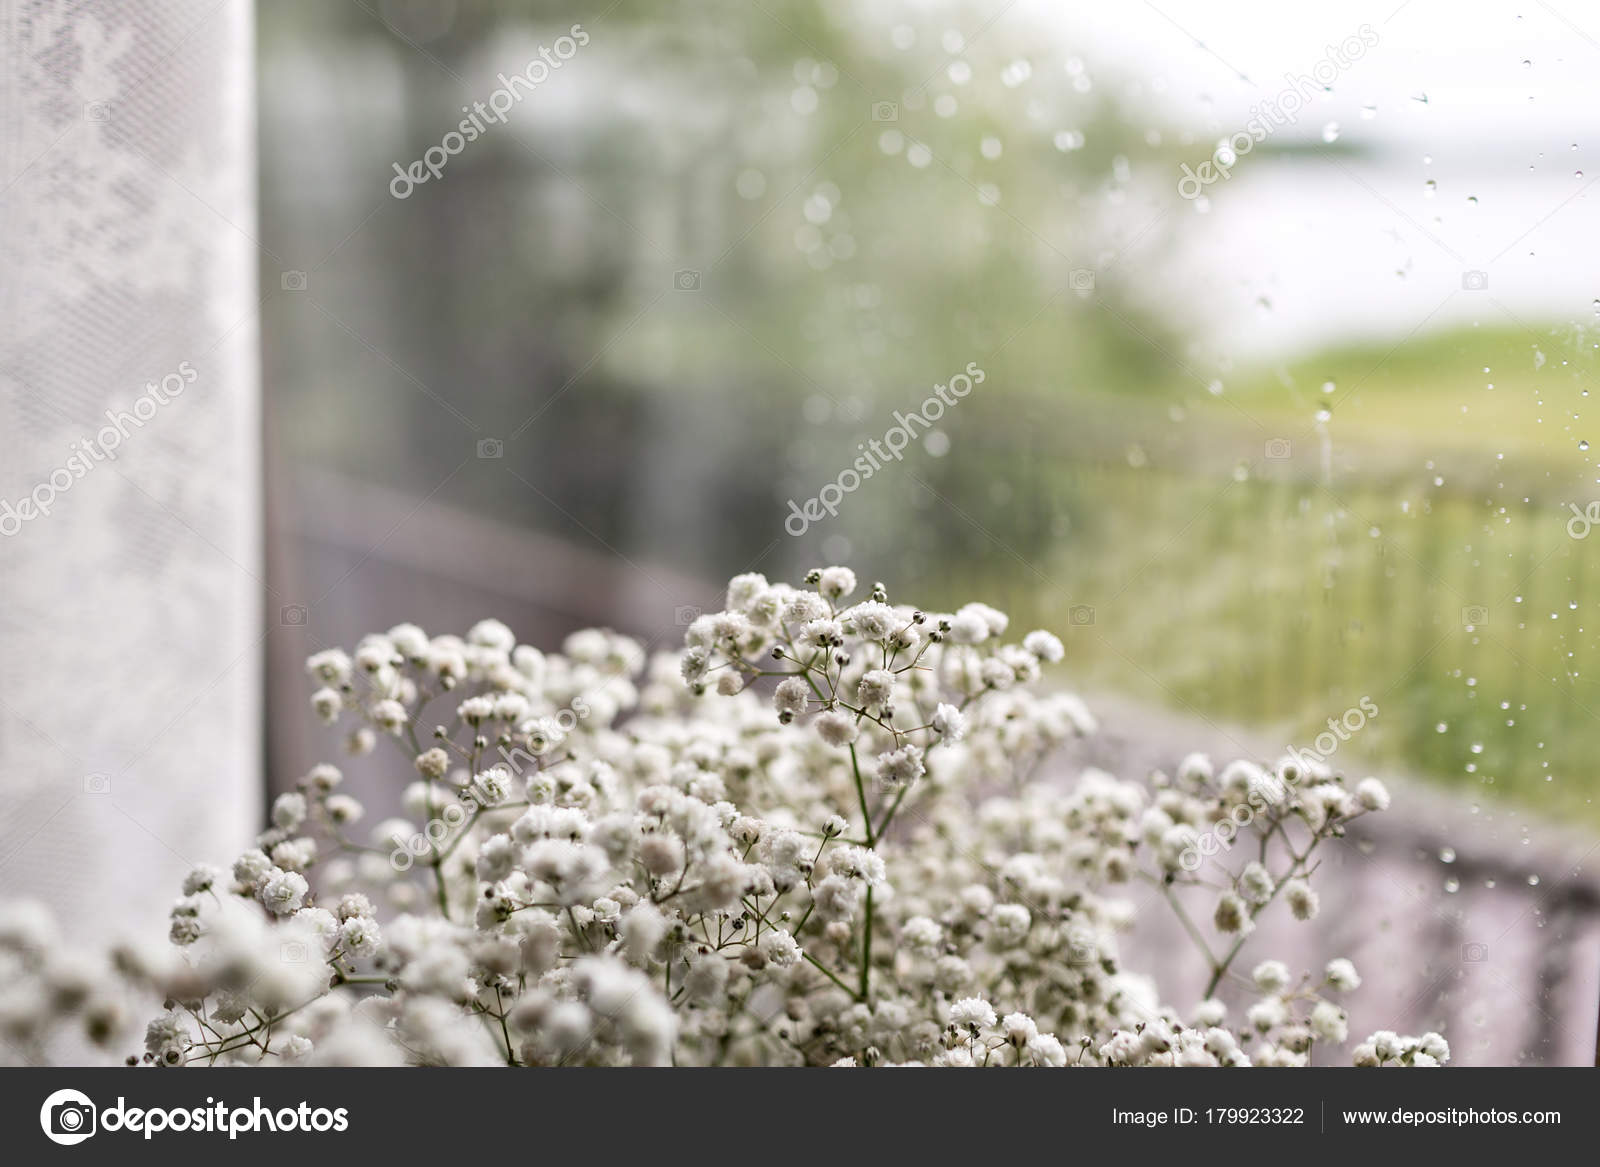 Small White Flowers On A Window Background Soft Home Decor White